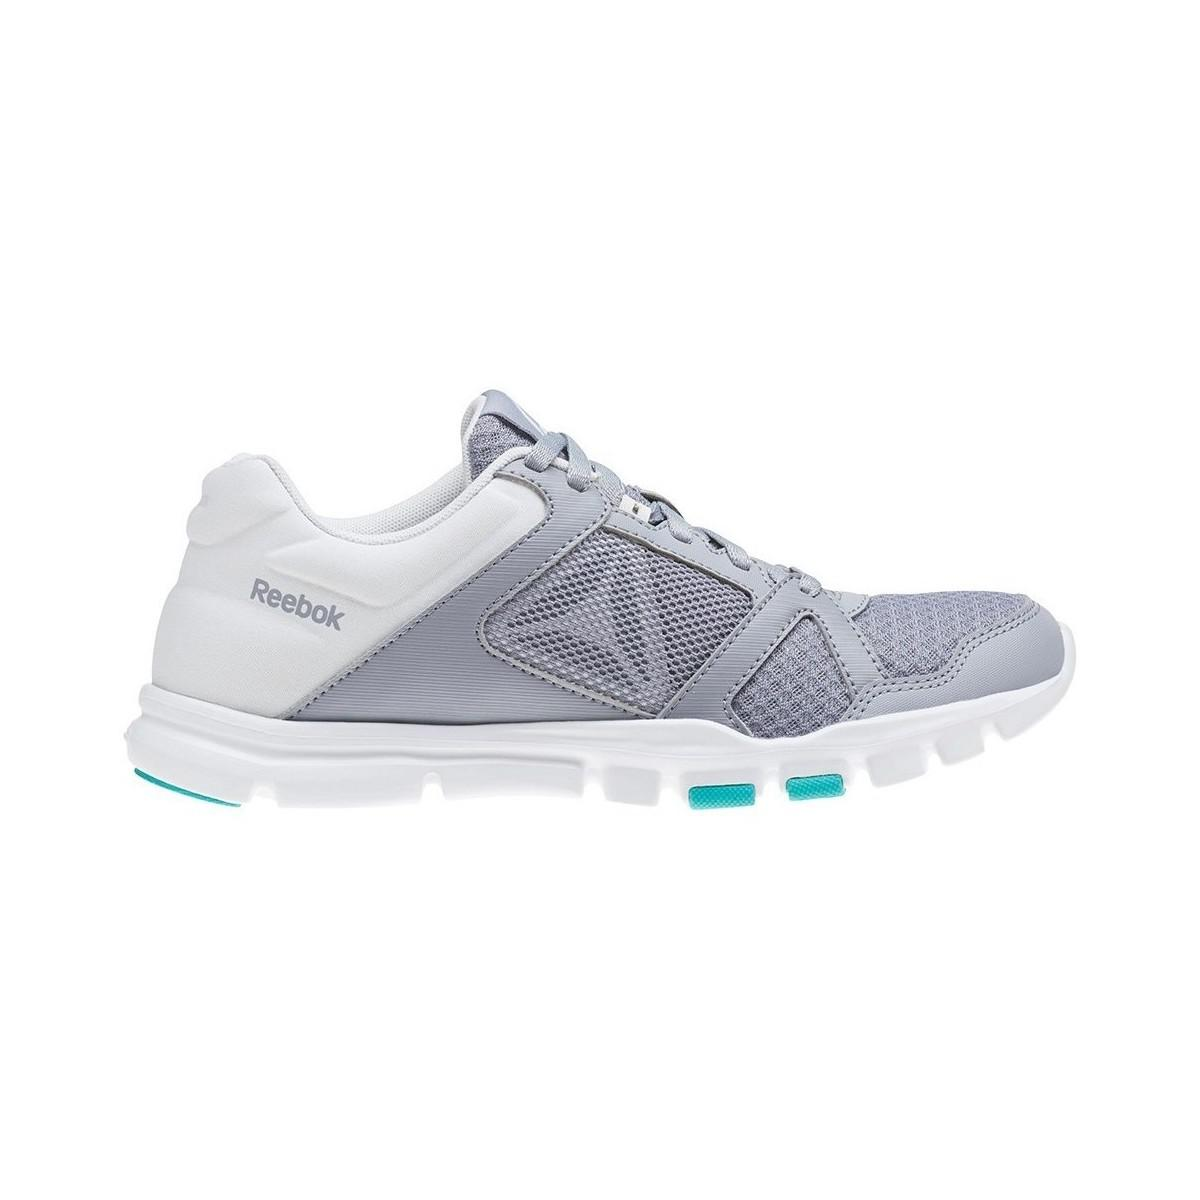 Reebok - Gray Yourflex Trainette 10 Mt Grey Women s Shoes (trainers) In  Grey -. View fullscreen 7cab8c94a